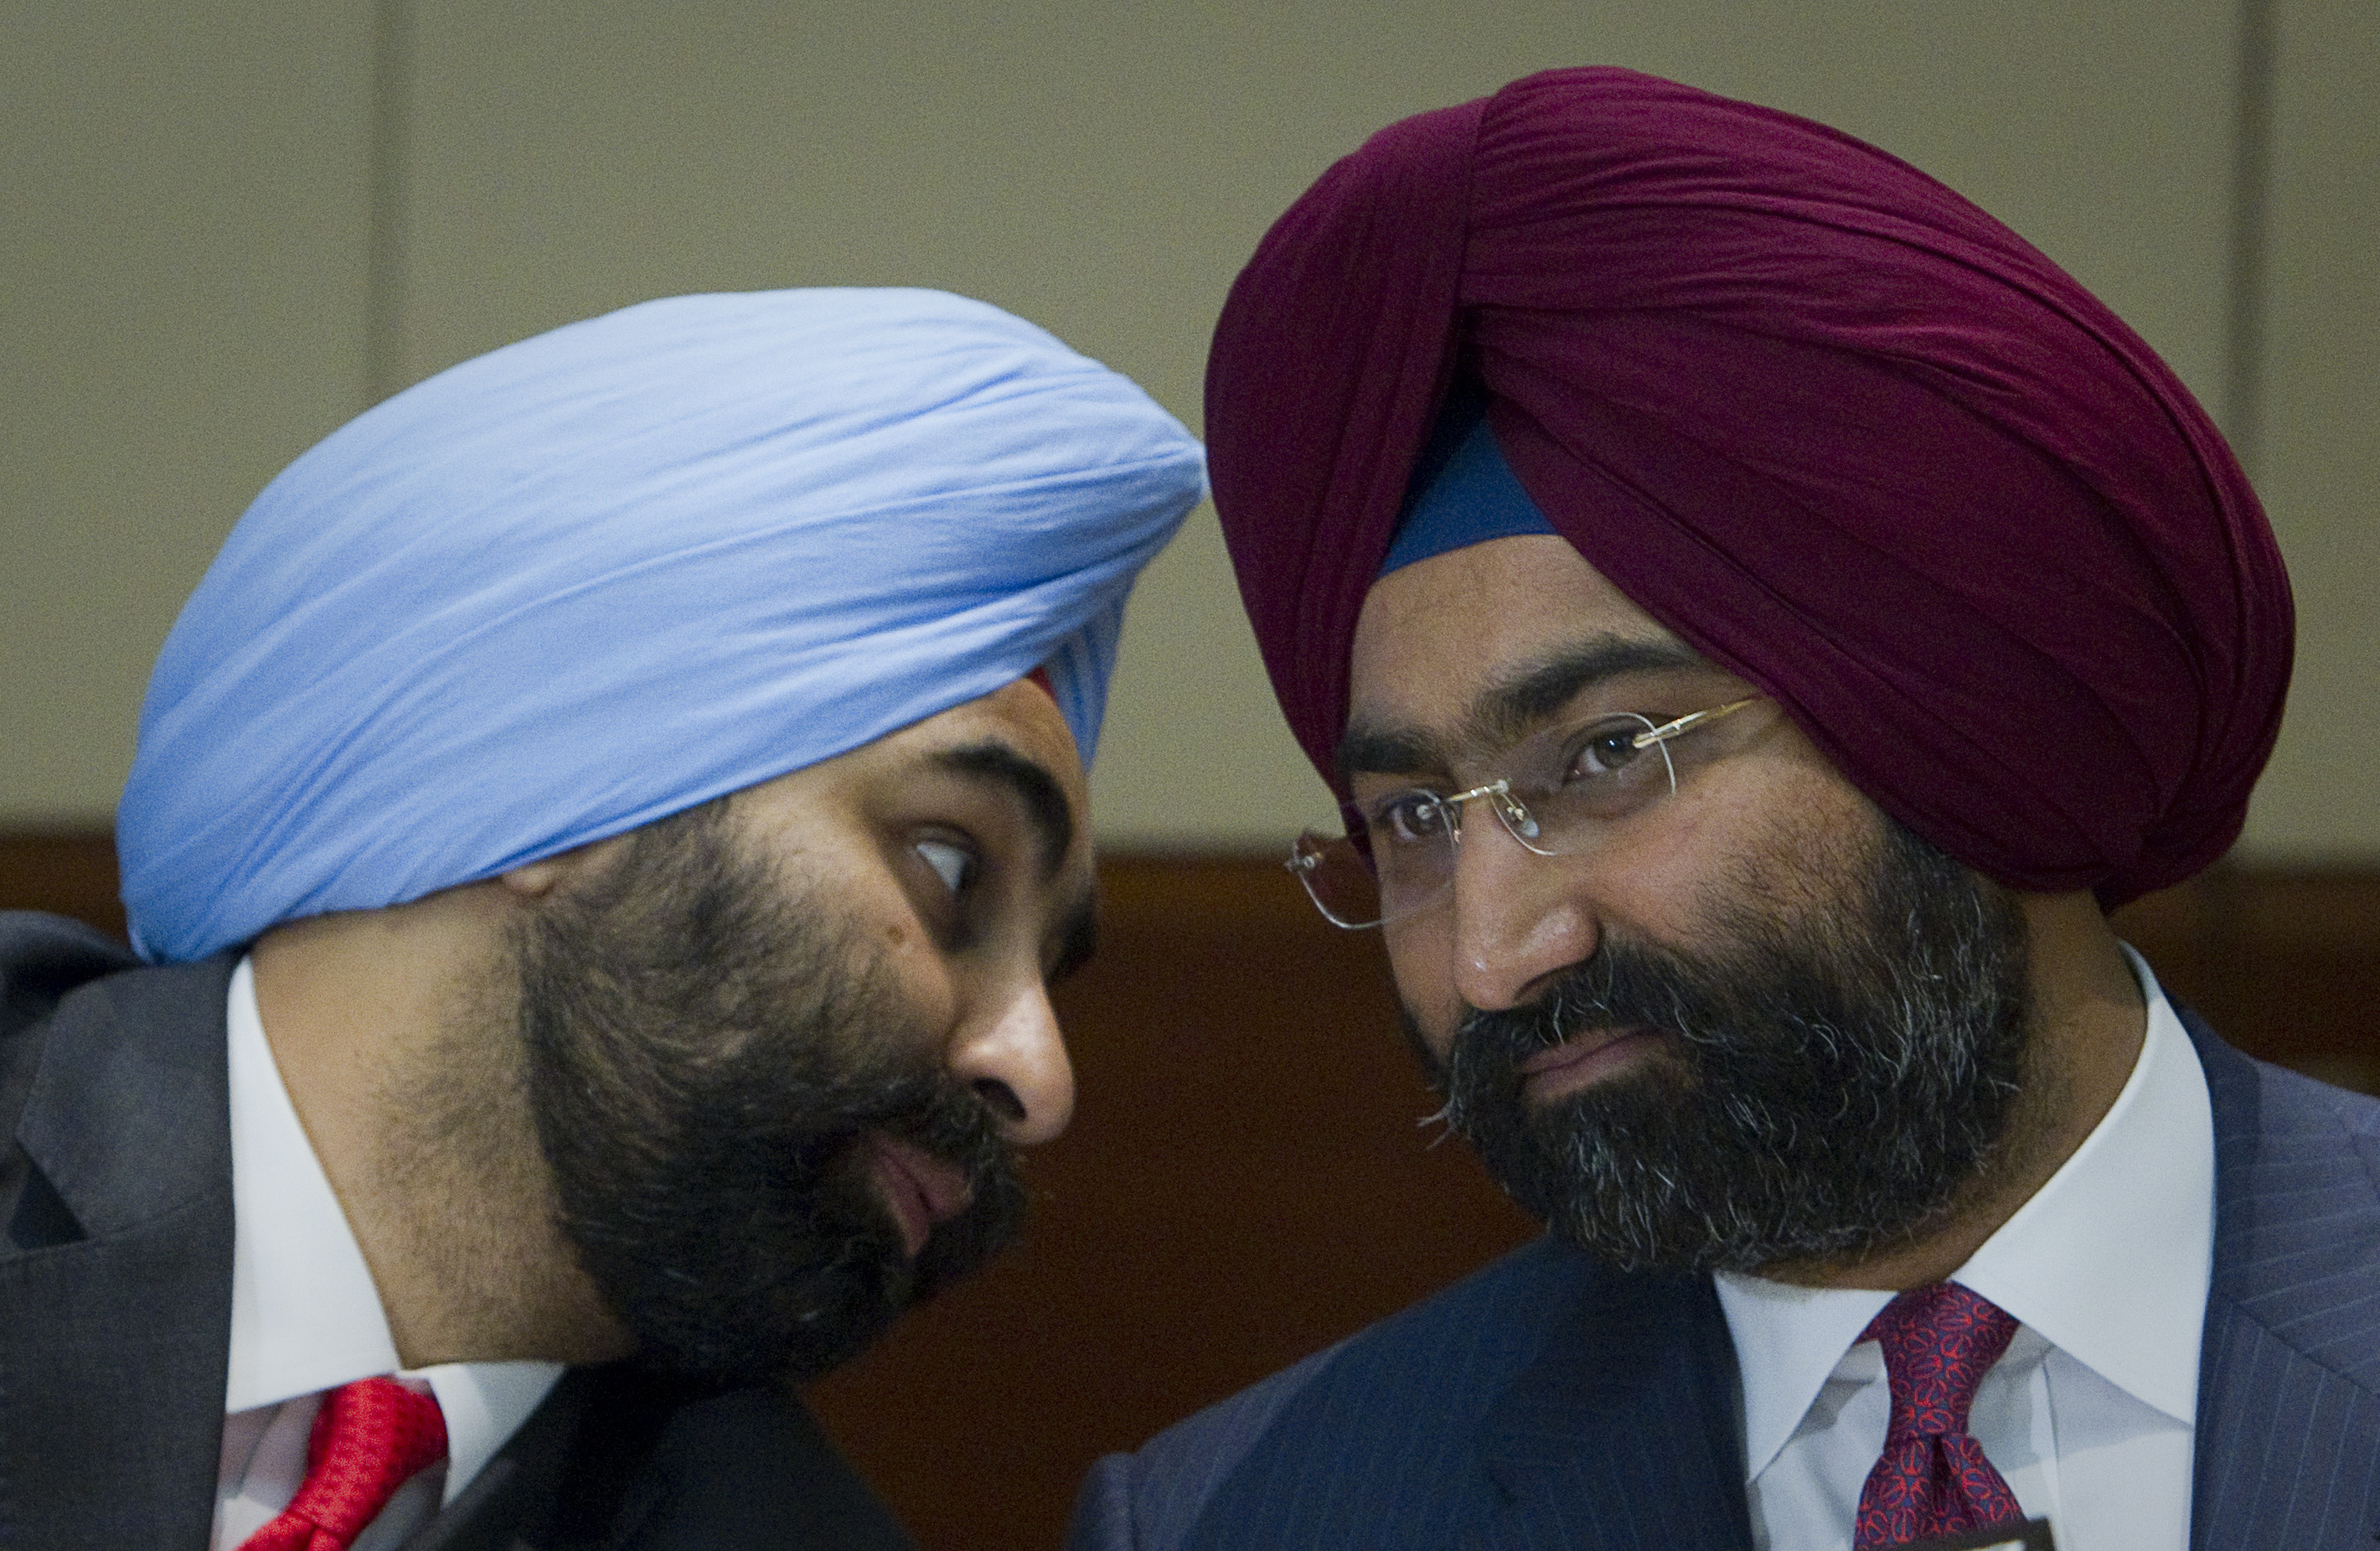 Shivinder Singh (L), Managing Director of Fortis Healthcare, speaks to his brother and Chairman Malivnder Singh during a news conference in Singapore July 1, 2010. India's Fortis Healthcare launched a bid valuing Singapore hospital operator Parkway Holdings at $3.1 billion (S$4.3 billion), topping a bid by rival suitor Malaysian state fund Khazanah.  REUTERS/Vivek Prakash (SINGAPORE - Tags: BUSINESS HEALTH) - GM1E6711D6601